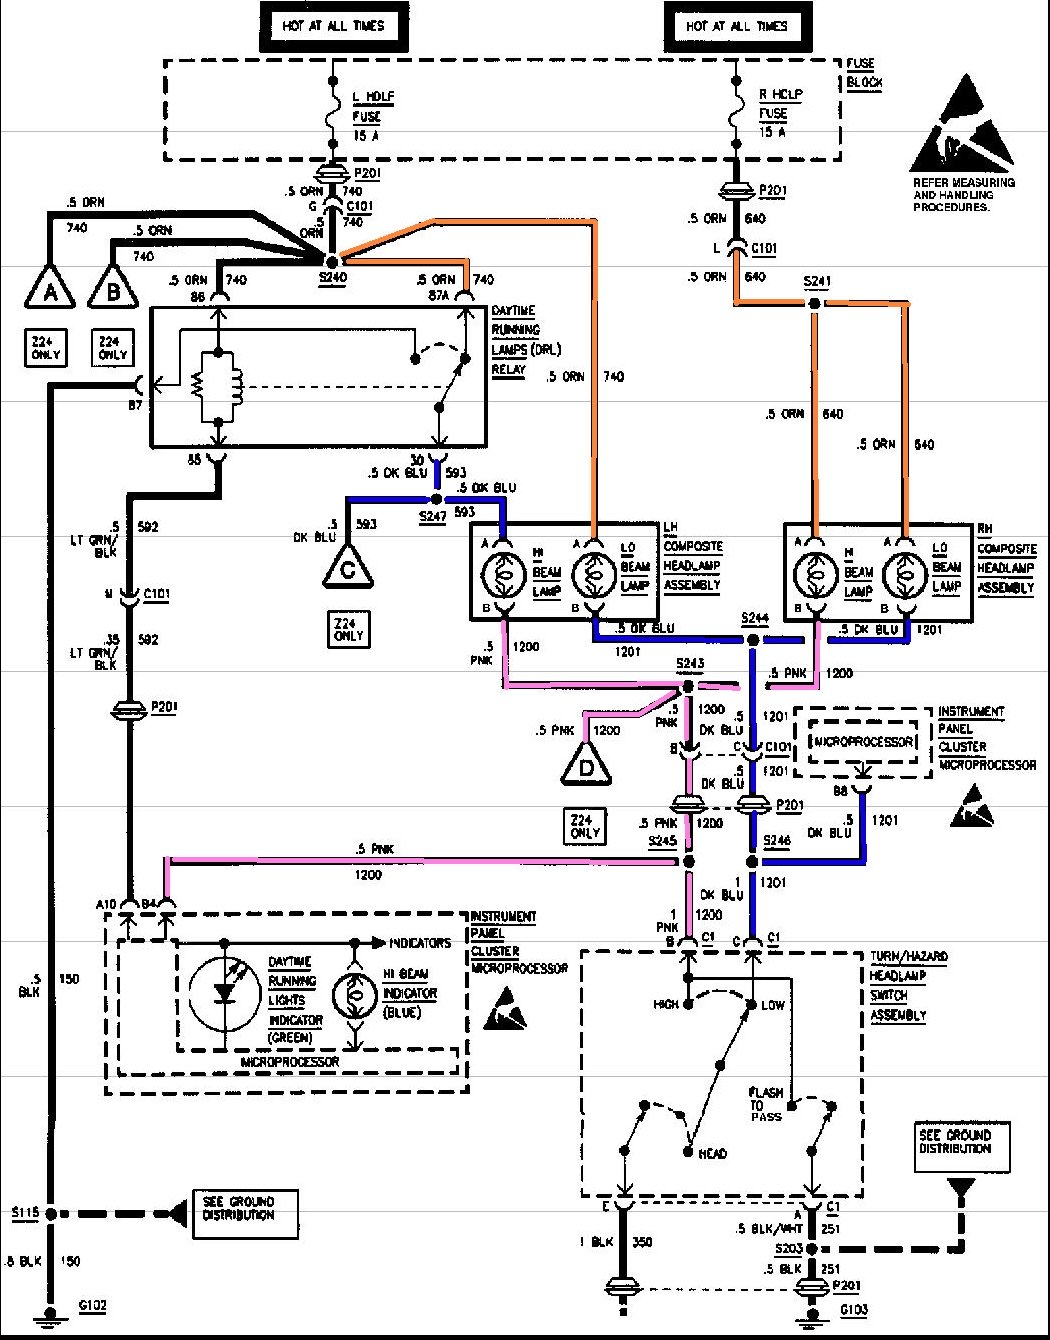 chevrolet cavalier headlight wiring diagram - wiring diagrams button  suck-breed - suck-breed.lamorciola.it  hello!